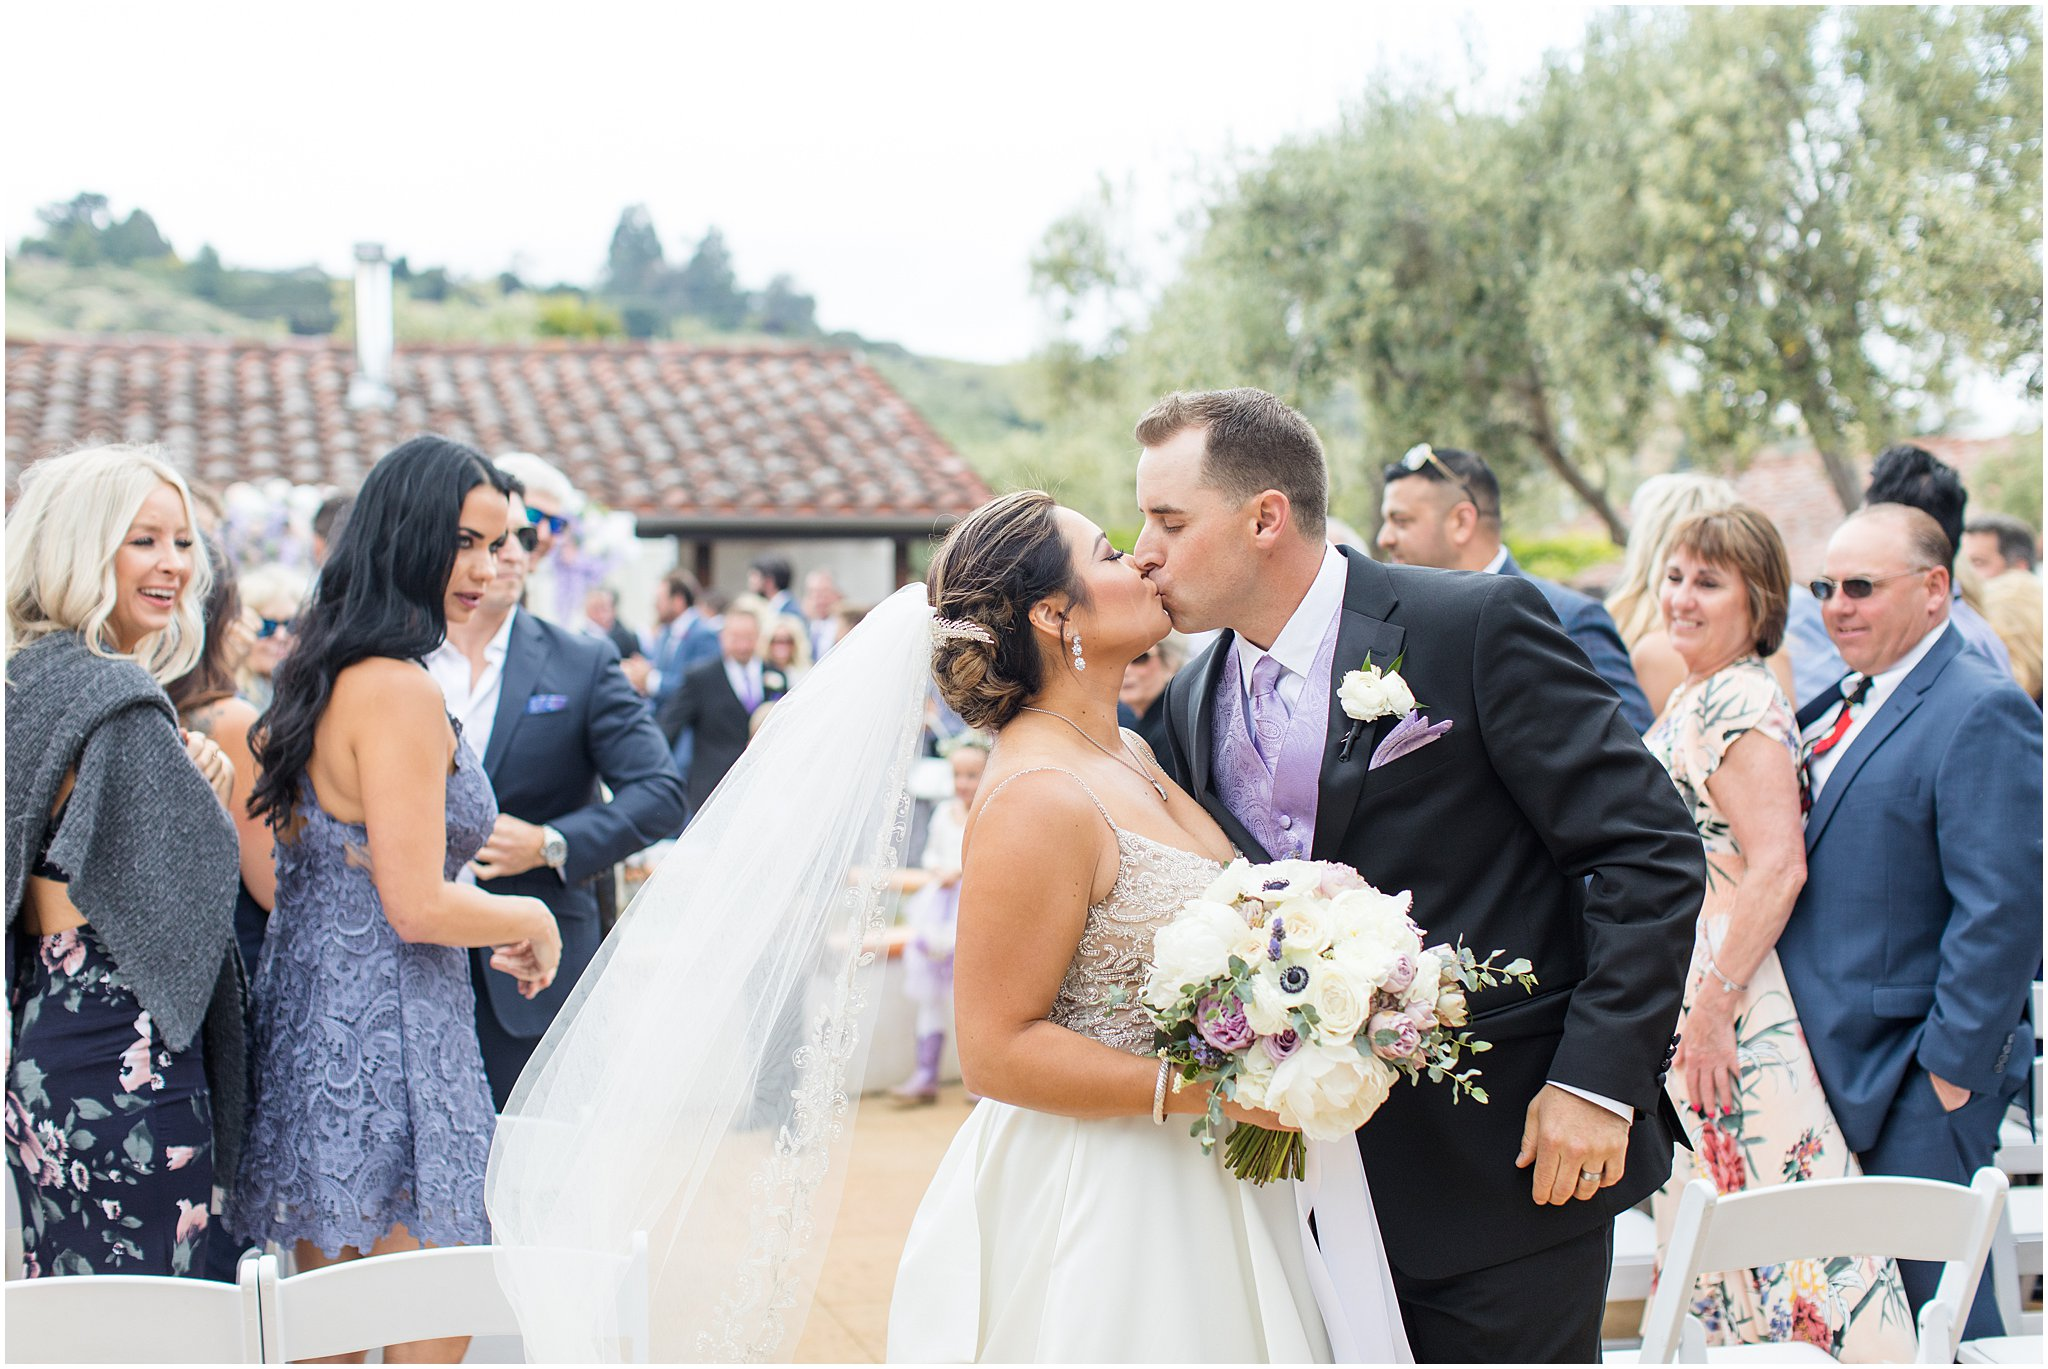 2019 wedding san juan bautista hacienda de leal vineyards bay area wedding photographer_0053.jpg